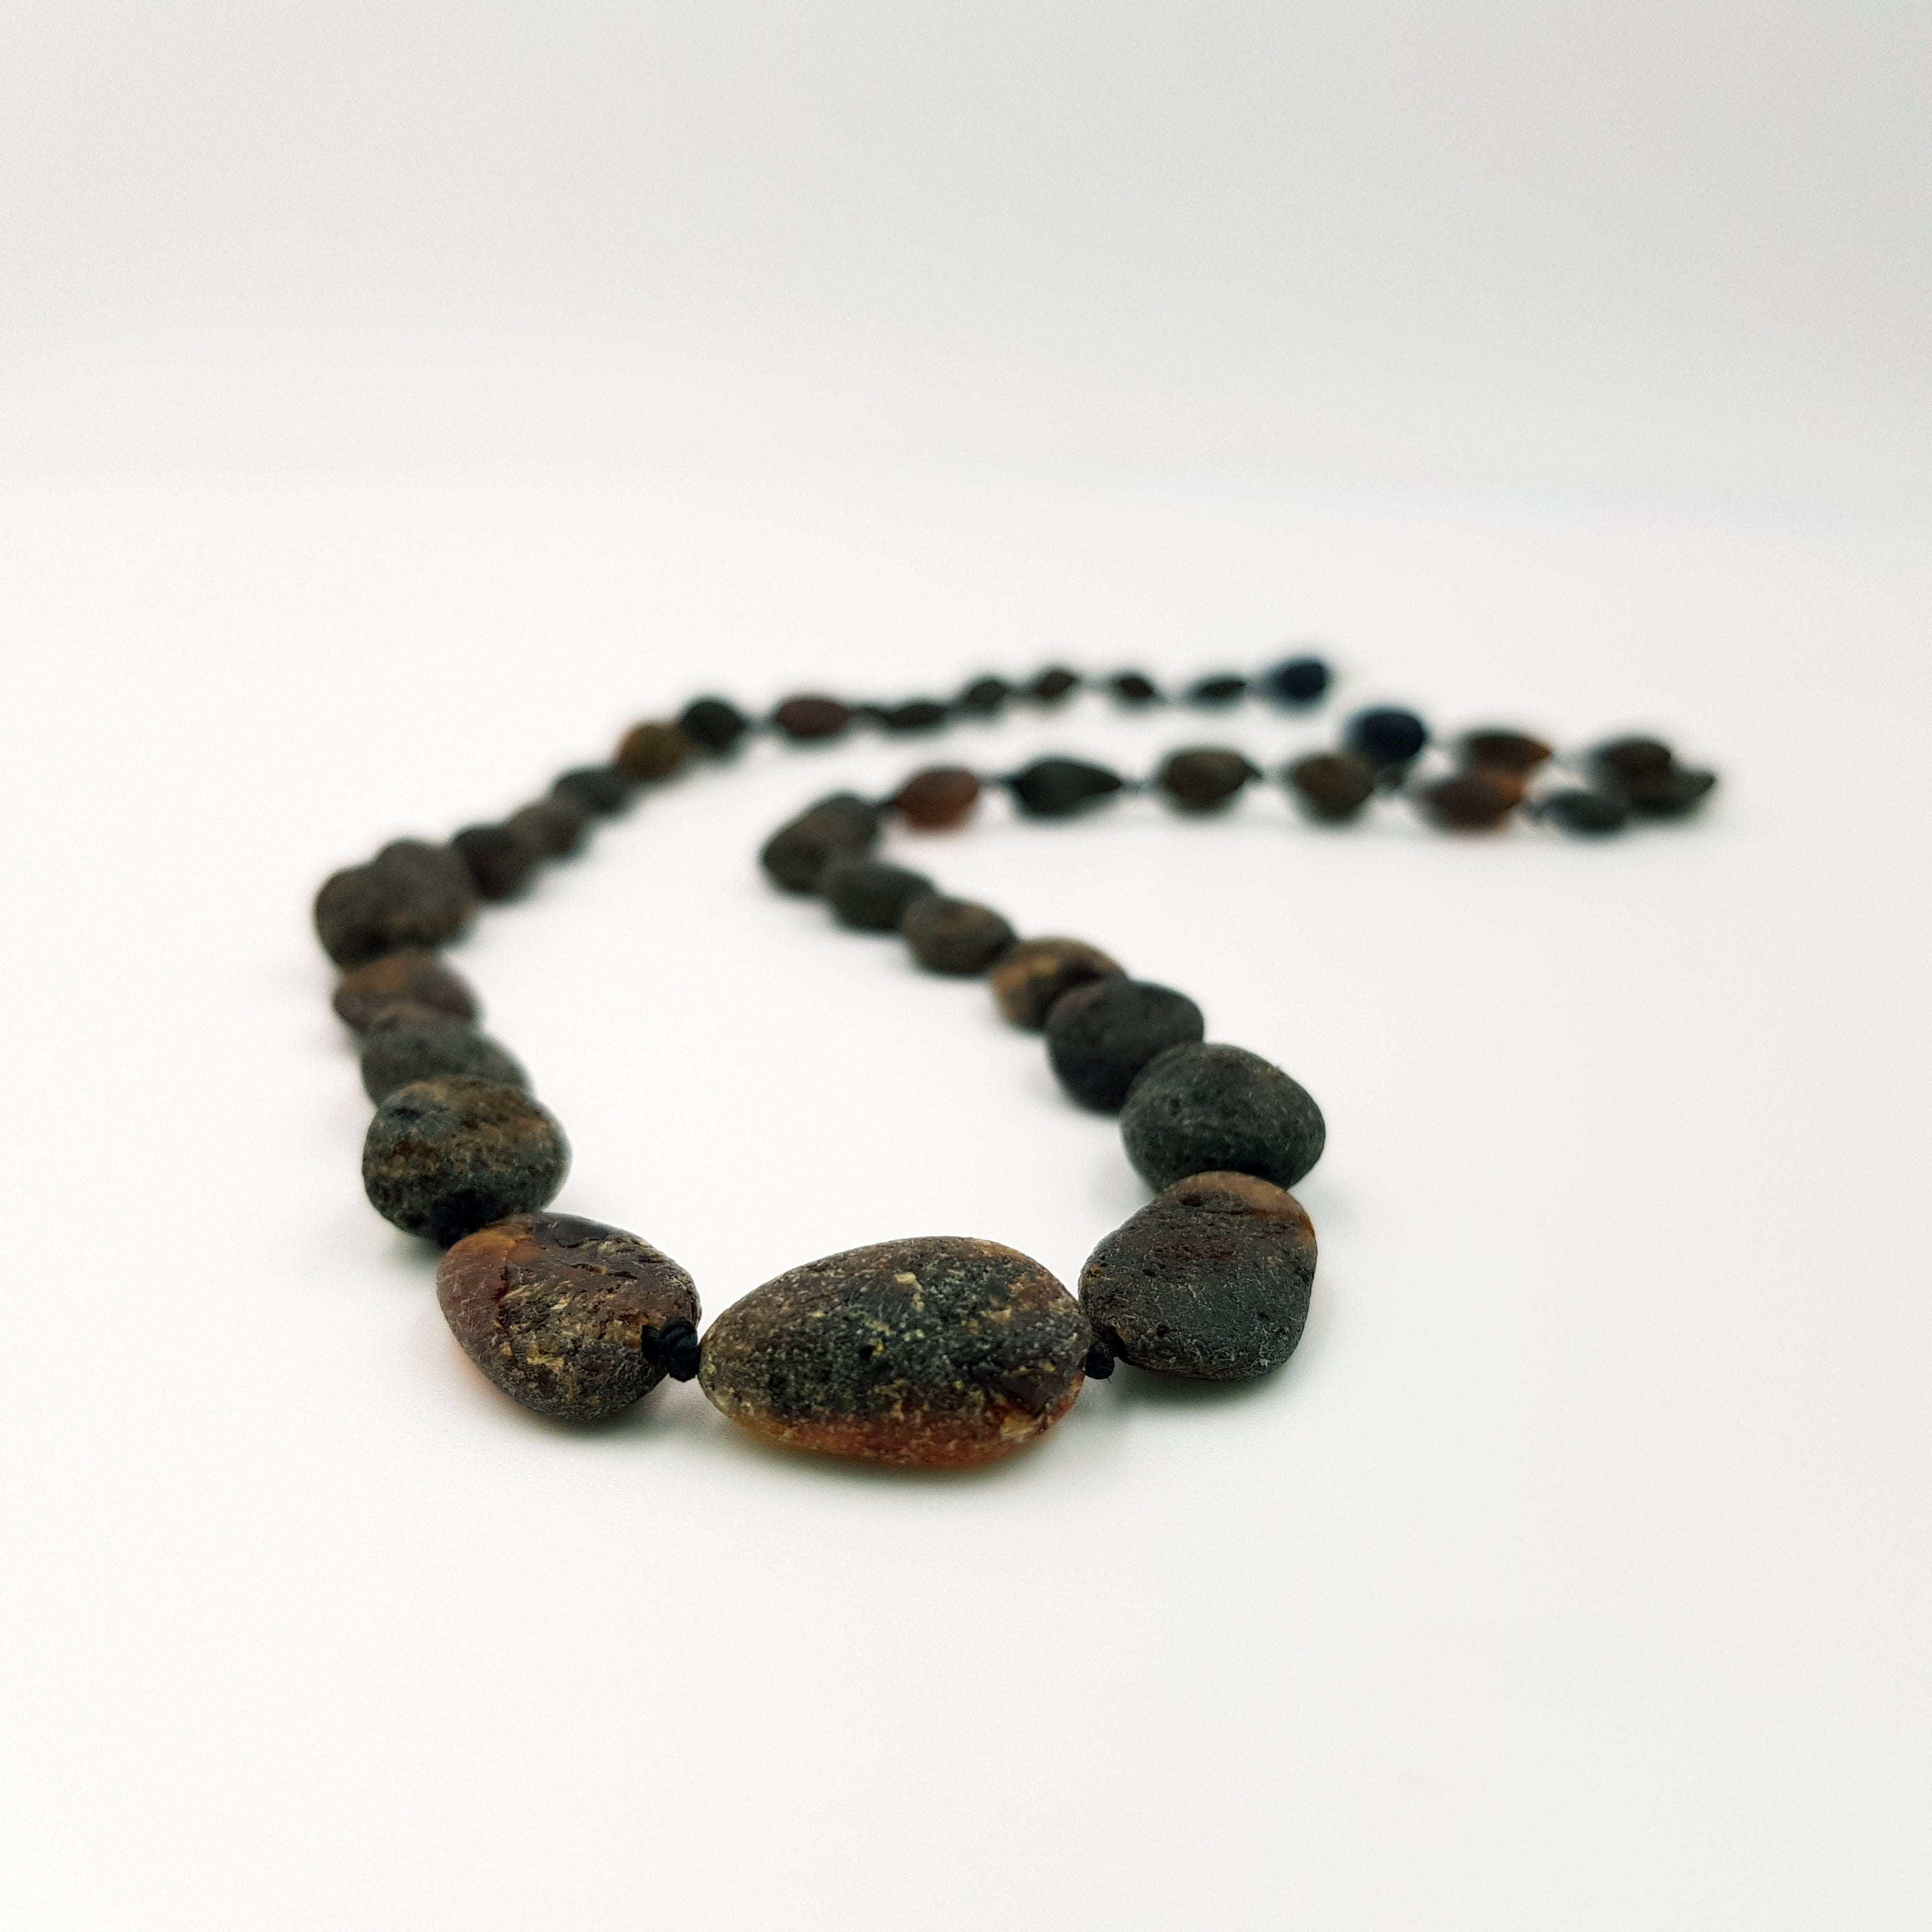 Adult Raw Earth Bean Amber Necklace